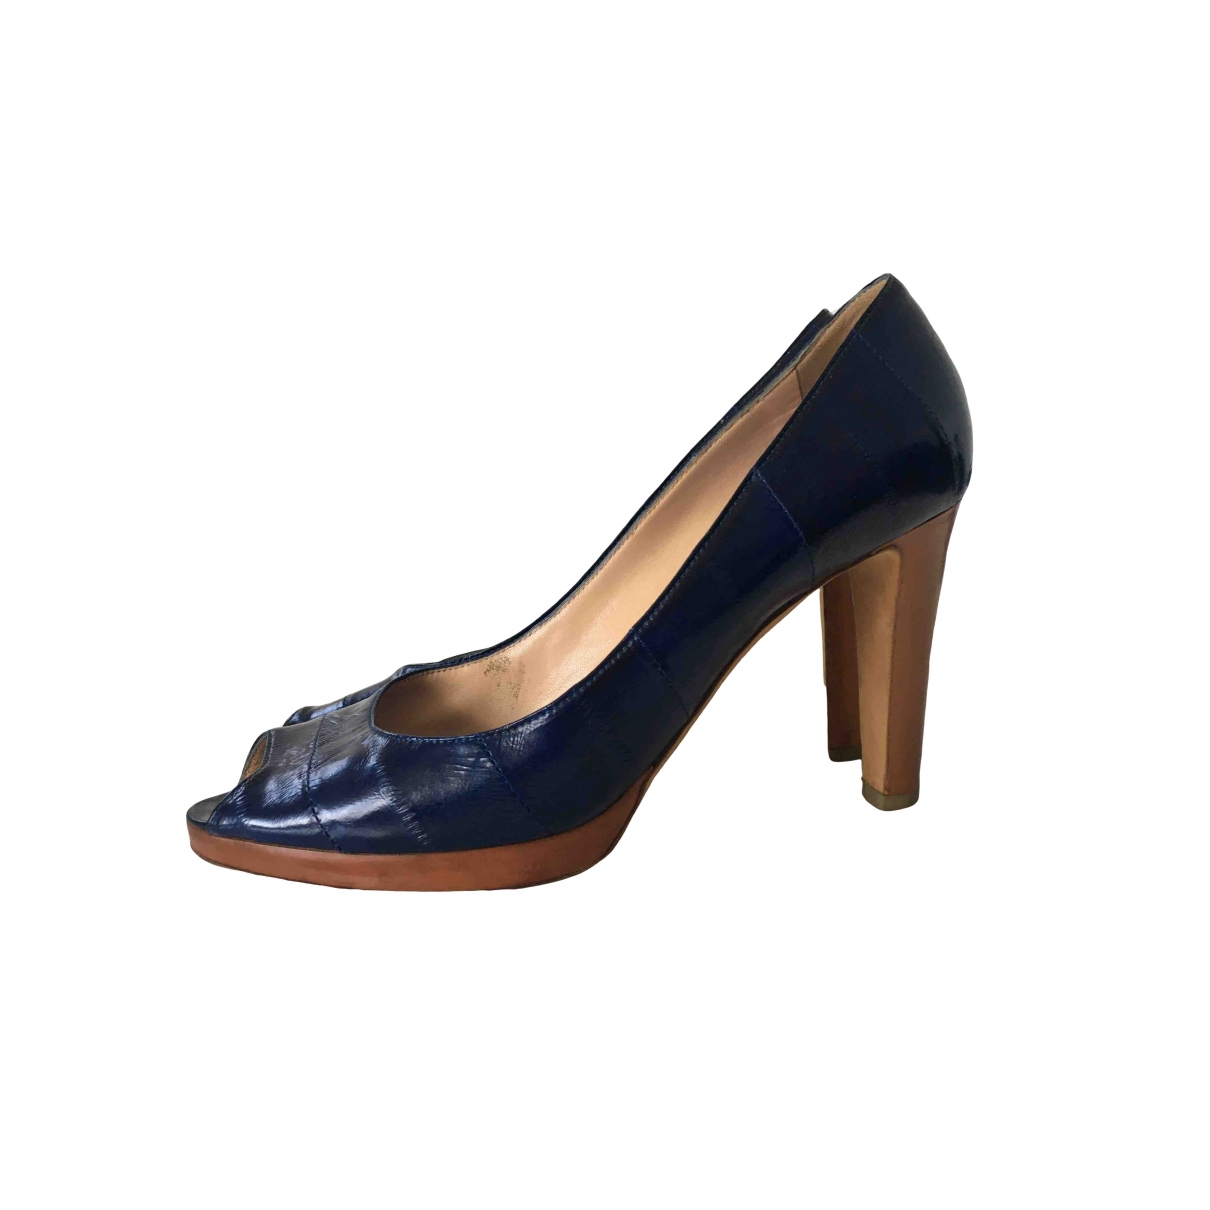 Sergio Rossi \N Blue Leather Heels for Women 38 EU